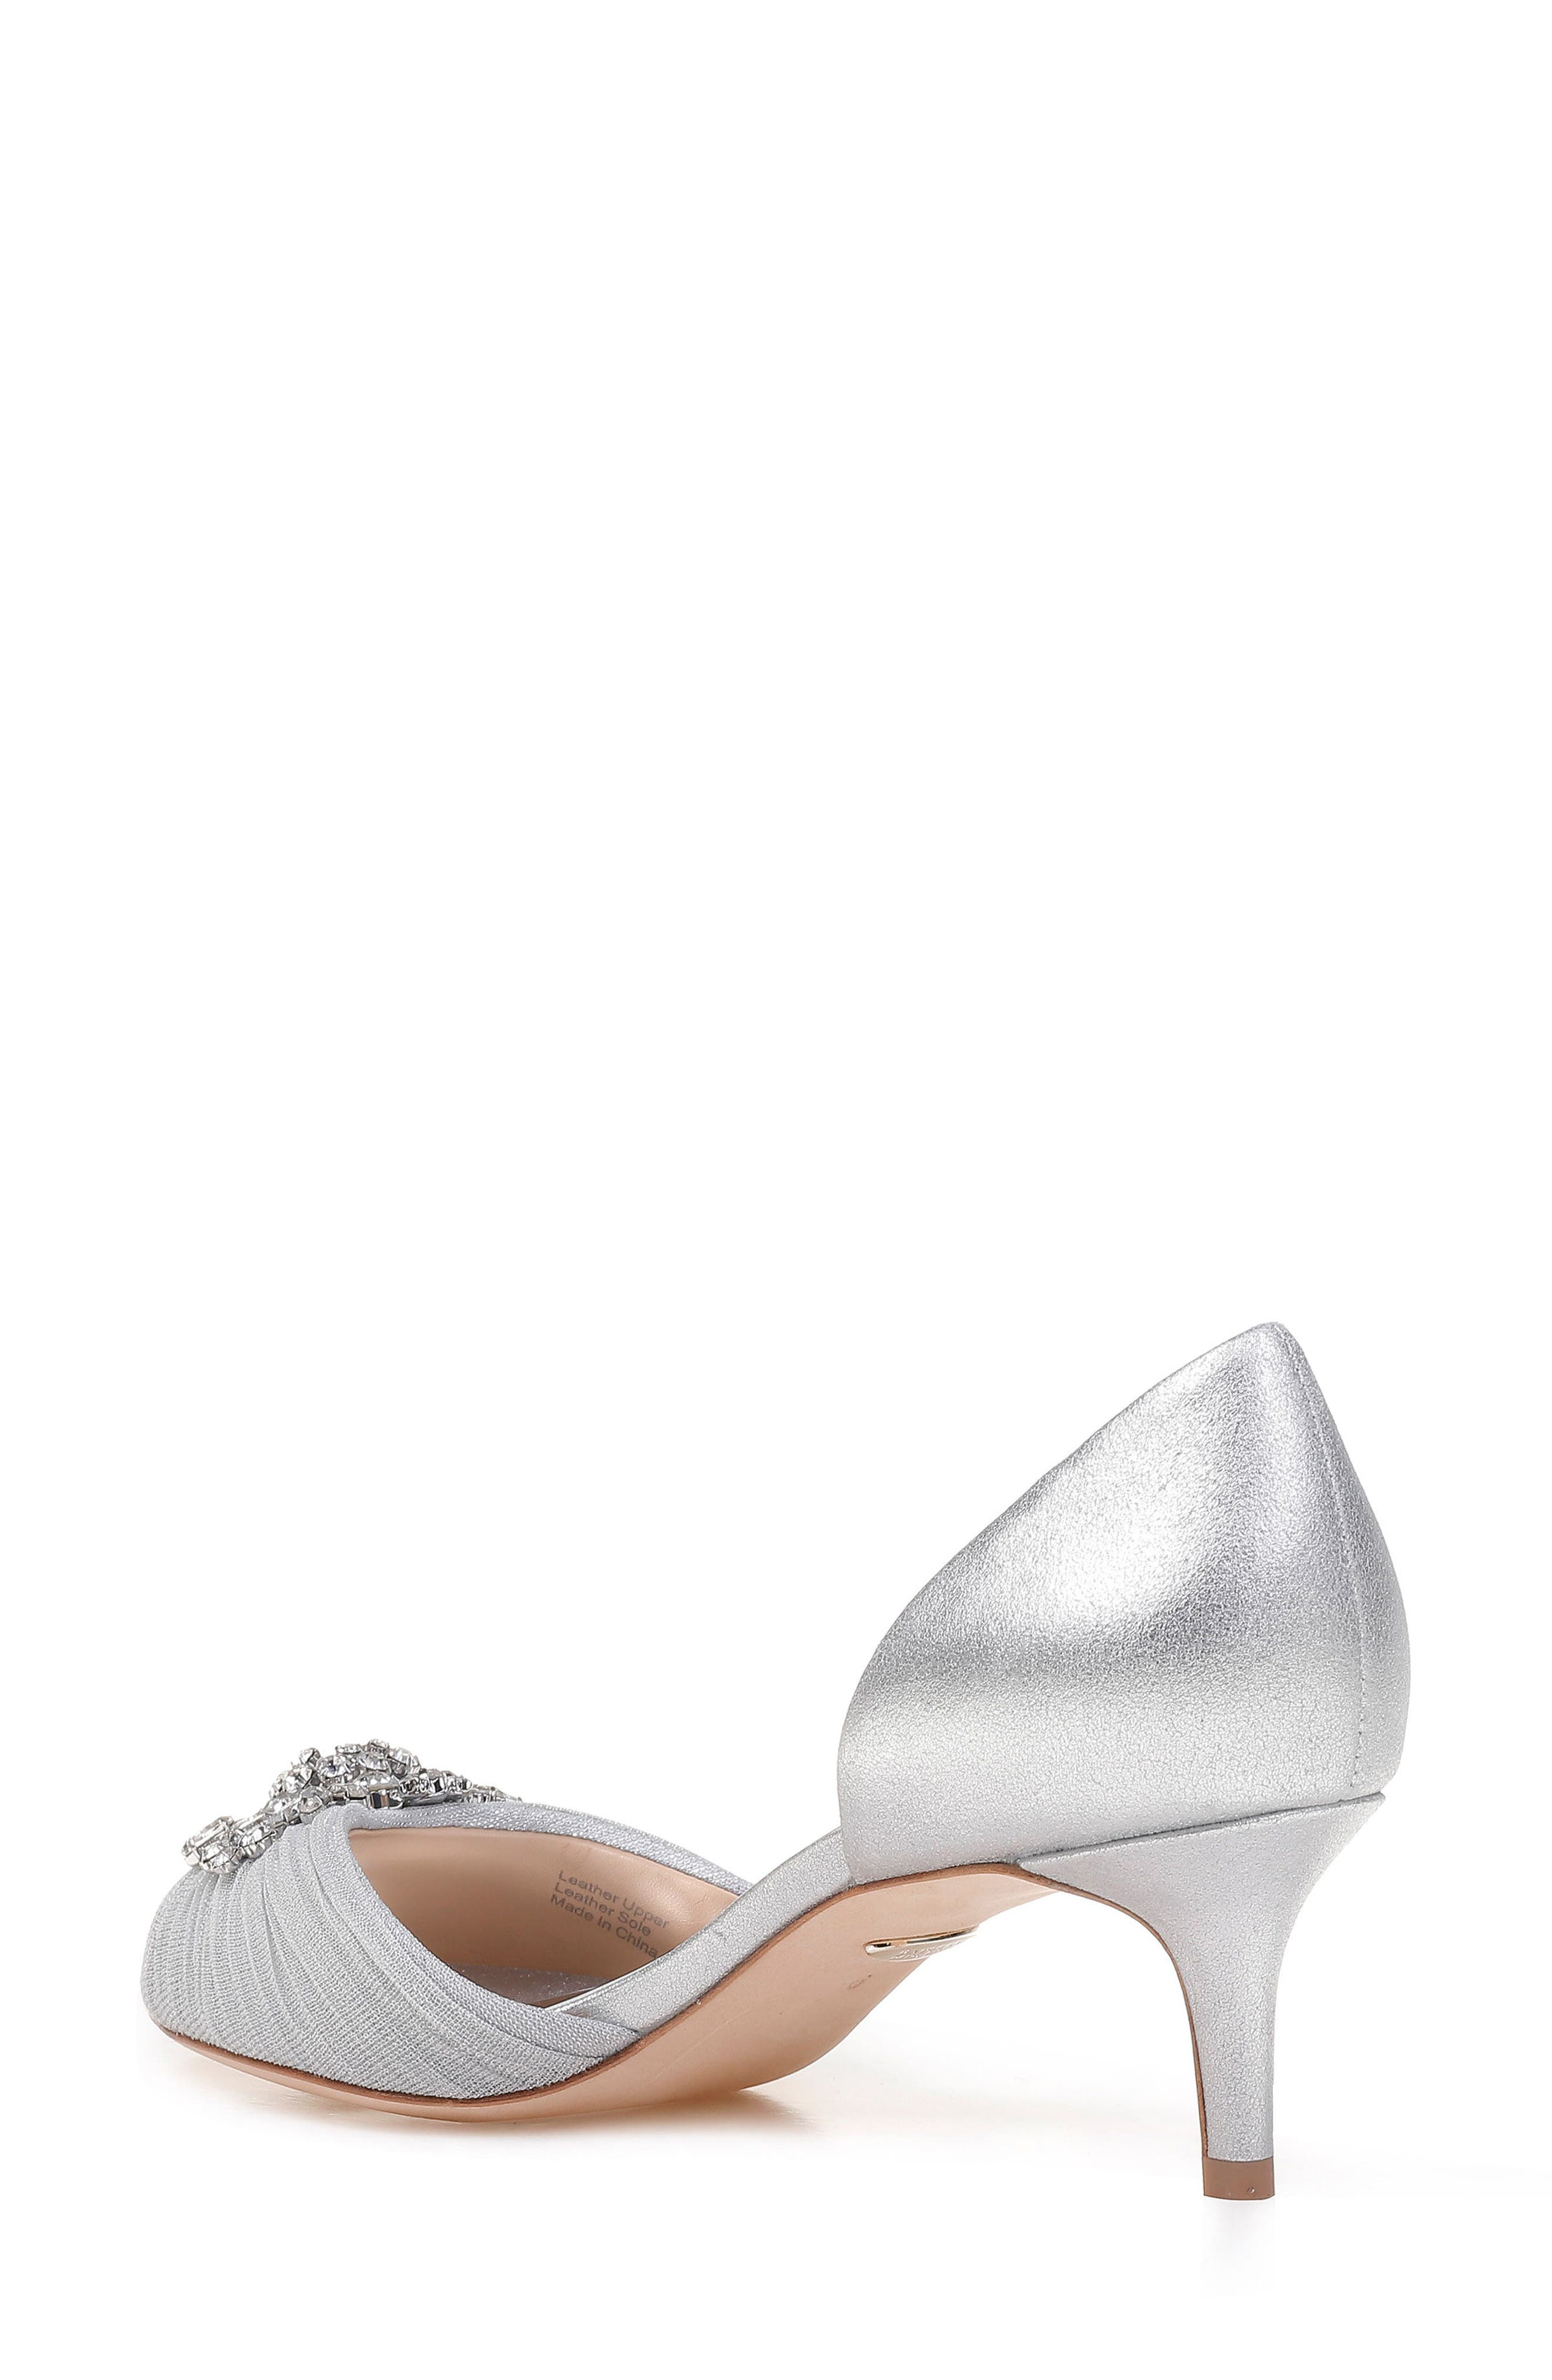 Sabine II Peep Toe Pump,                             Alternate thumbnail 2, color,                             Silver Satin